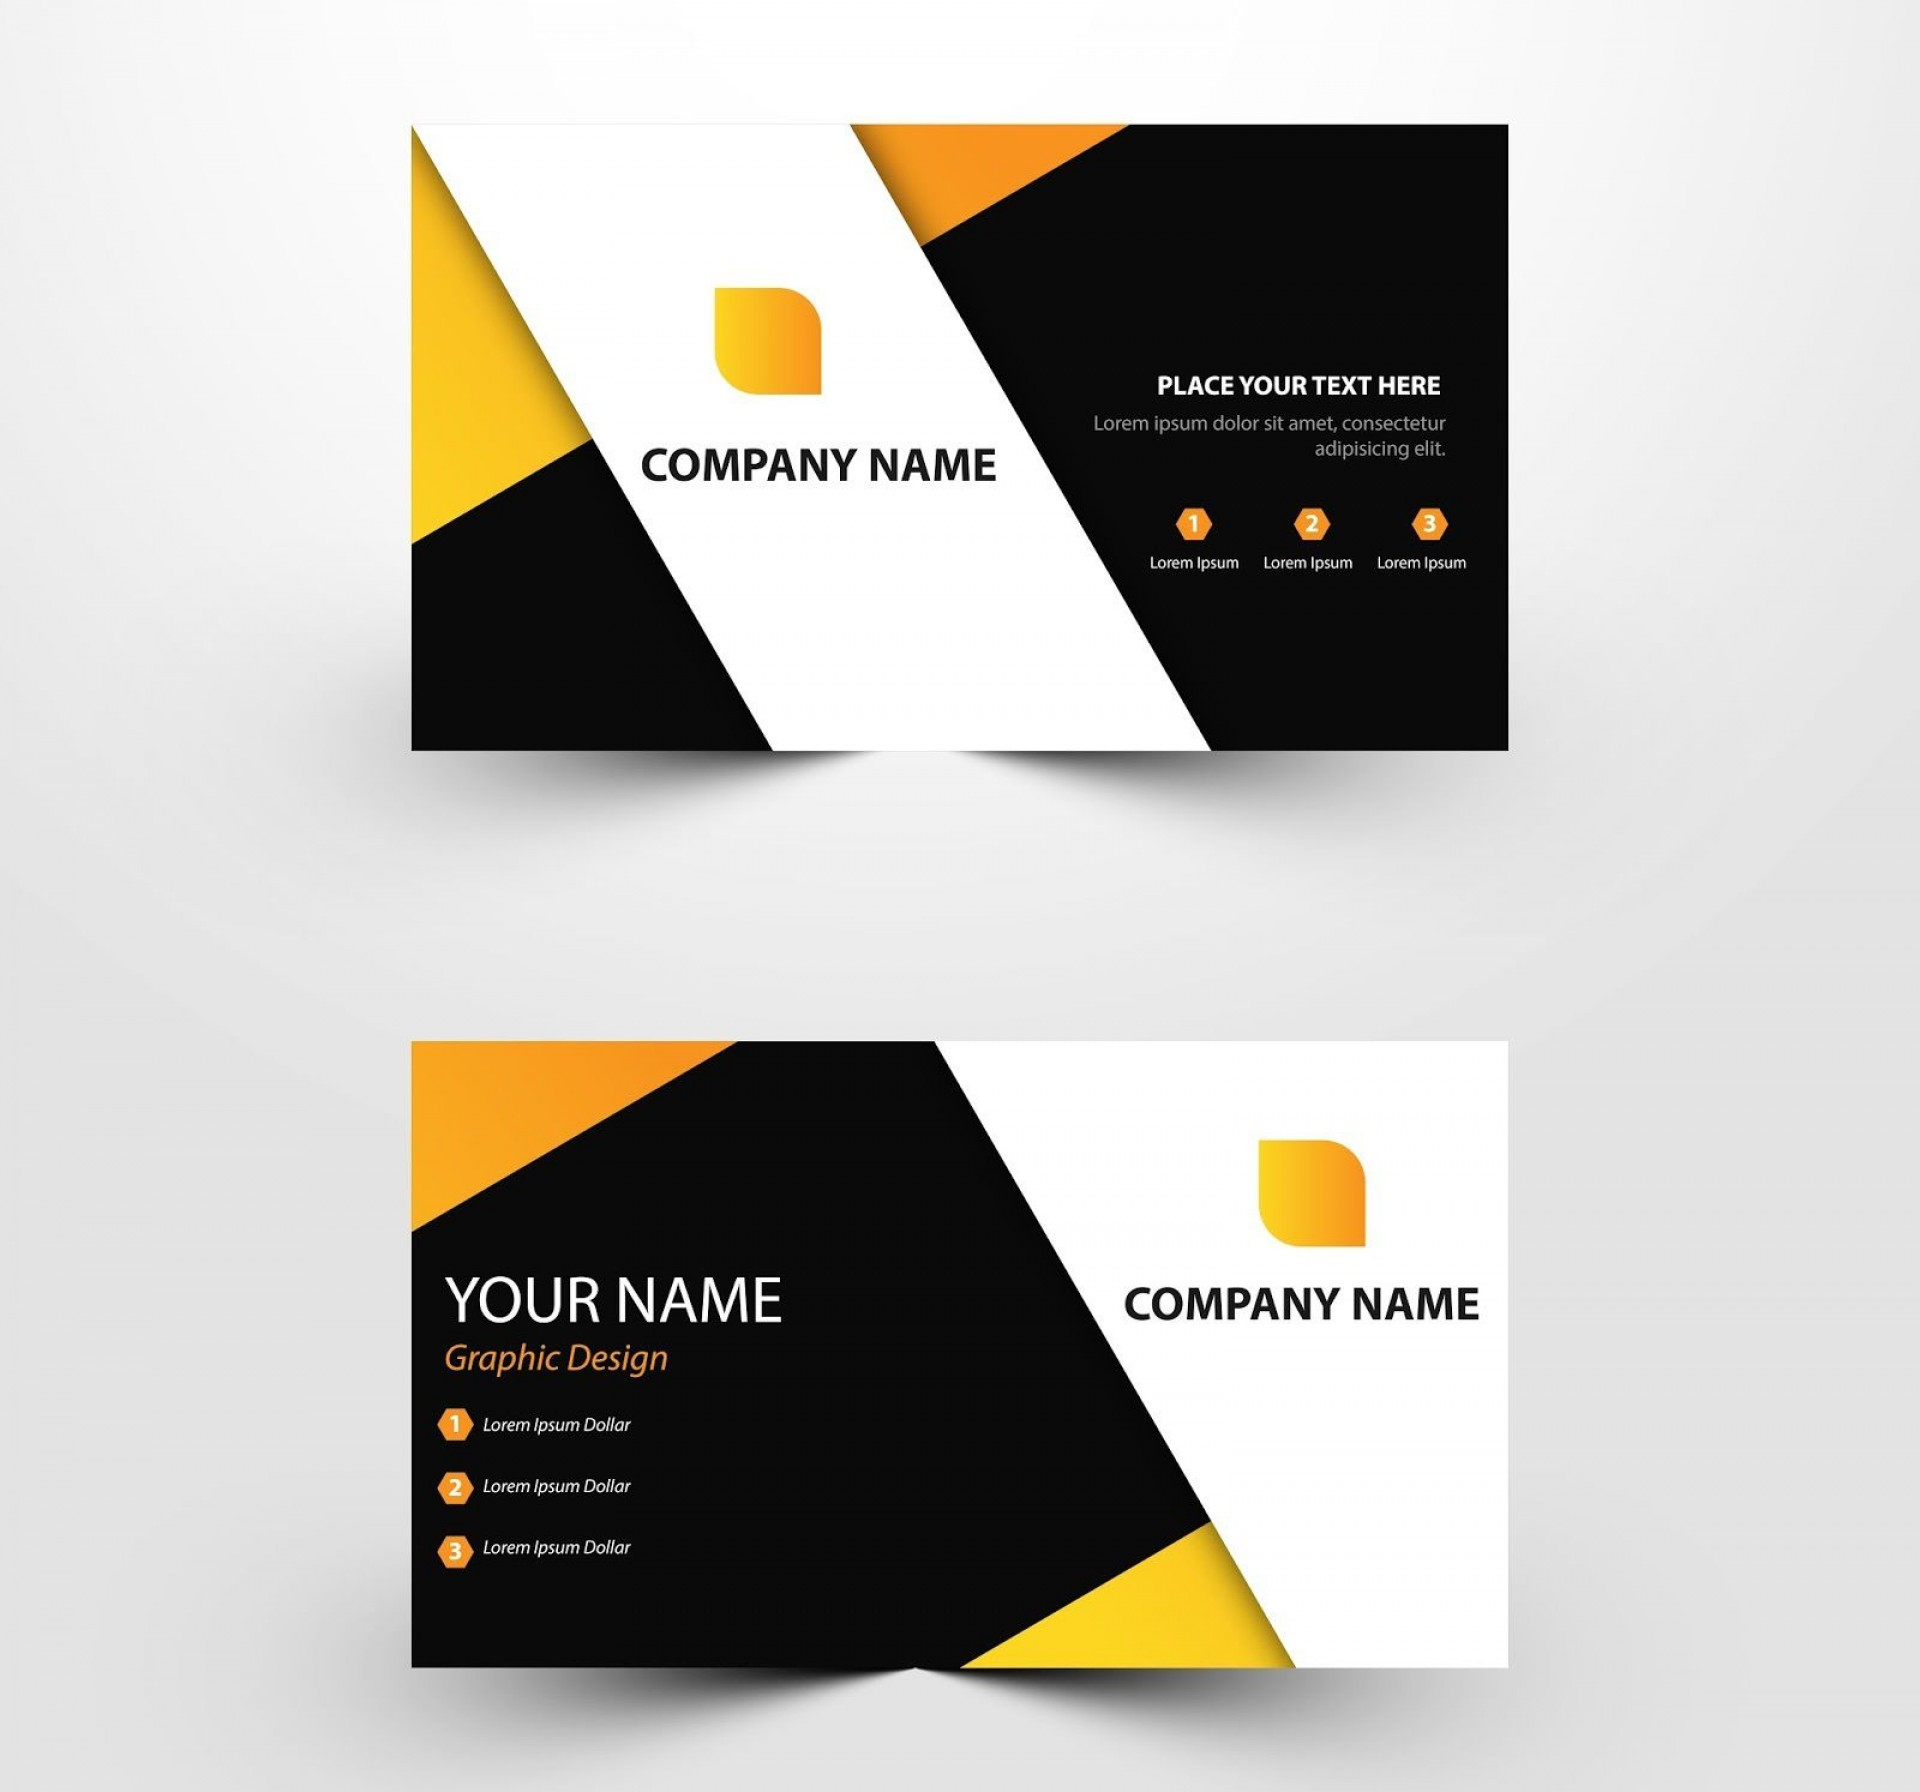 008 Stunning Name Card Template Free Download Design  Table Ai Wedding1920